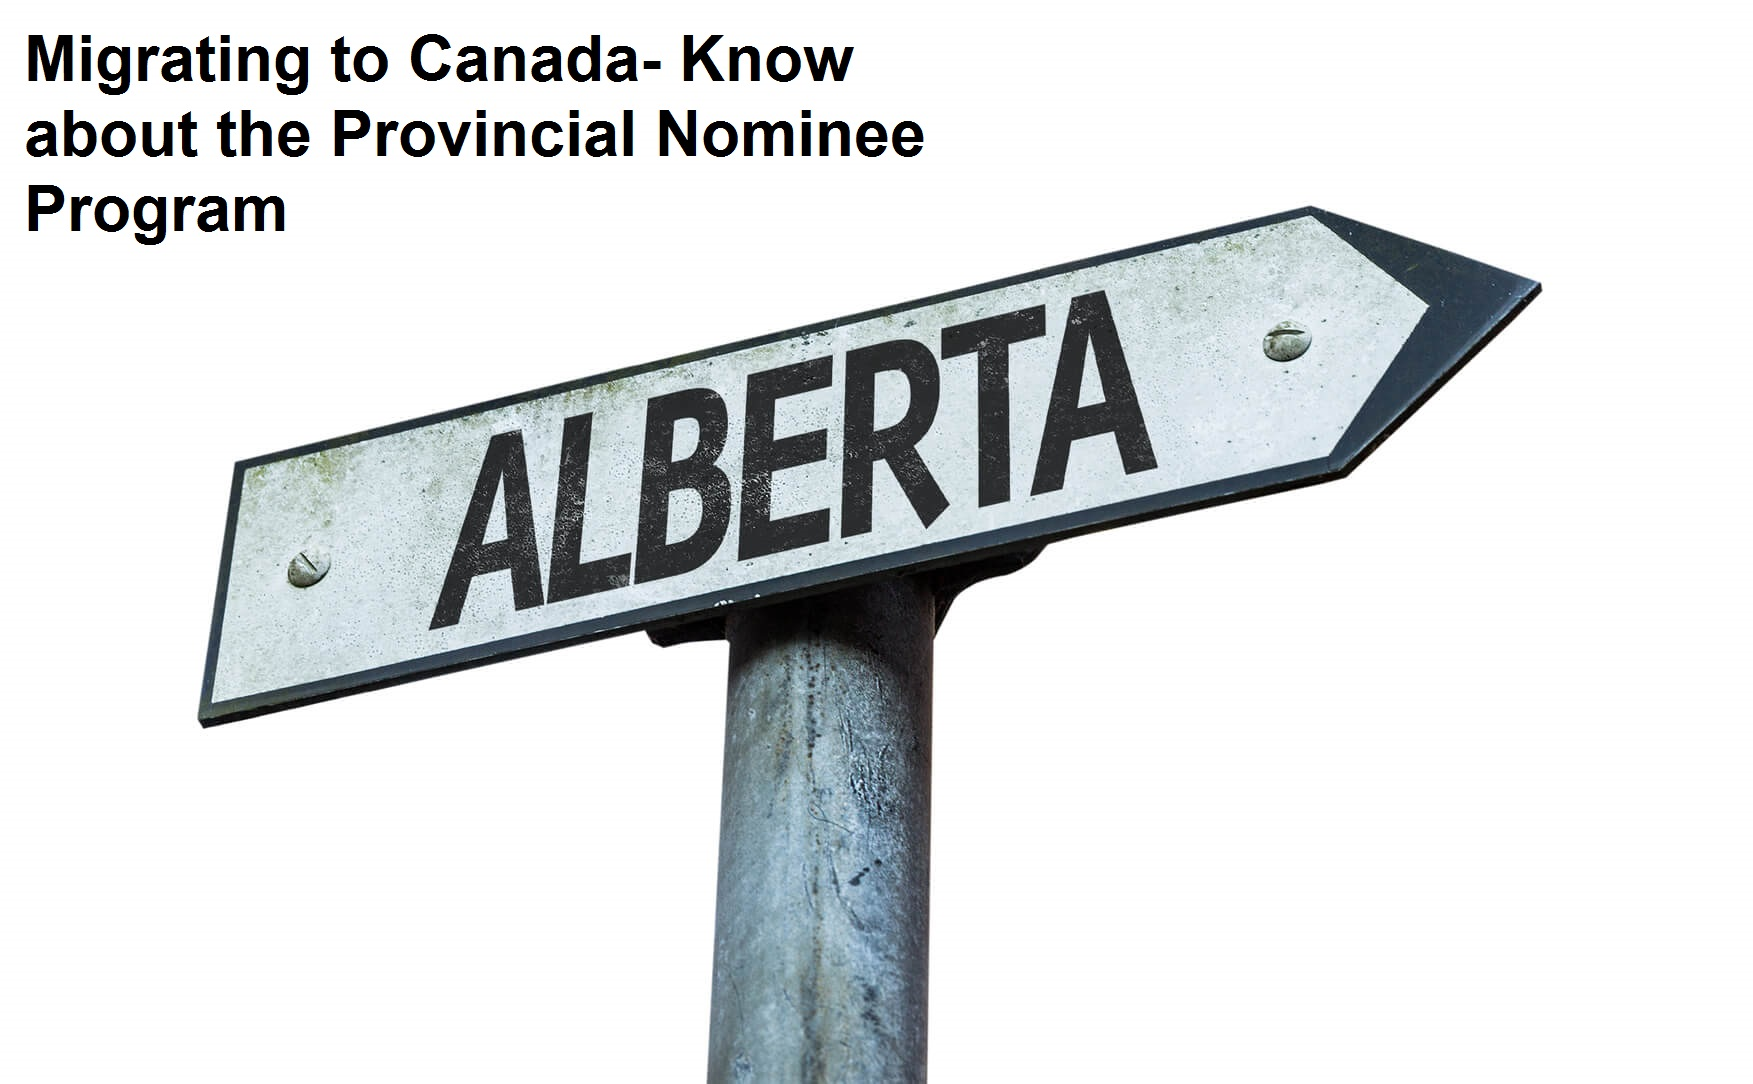 Migrating to Canada- Know about the Provincial Nominee Program